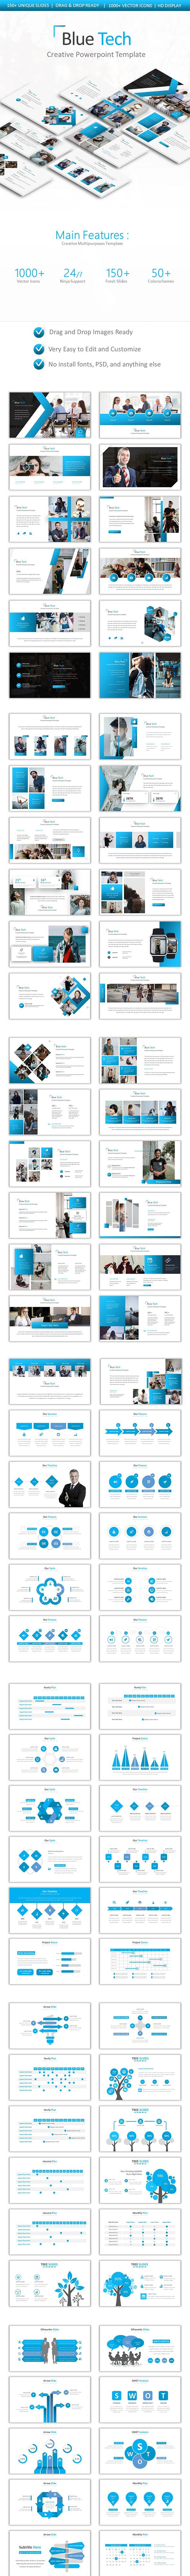 blue tech powerpoint by pro tools design graphicriver